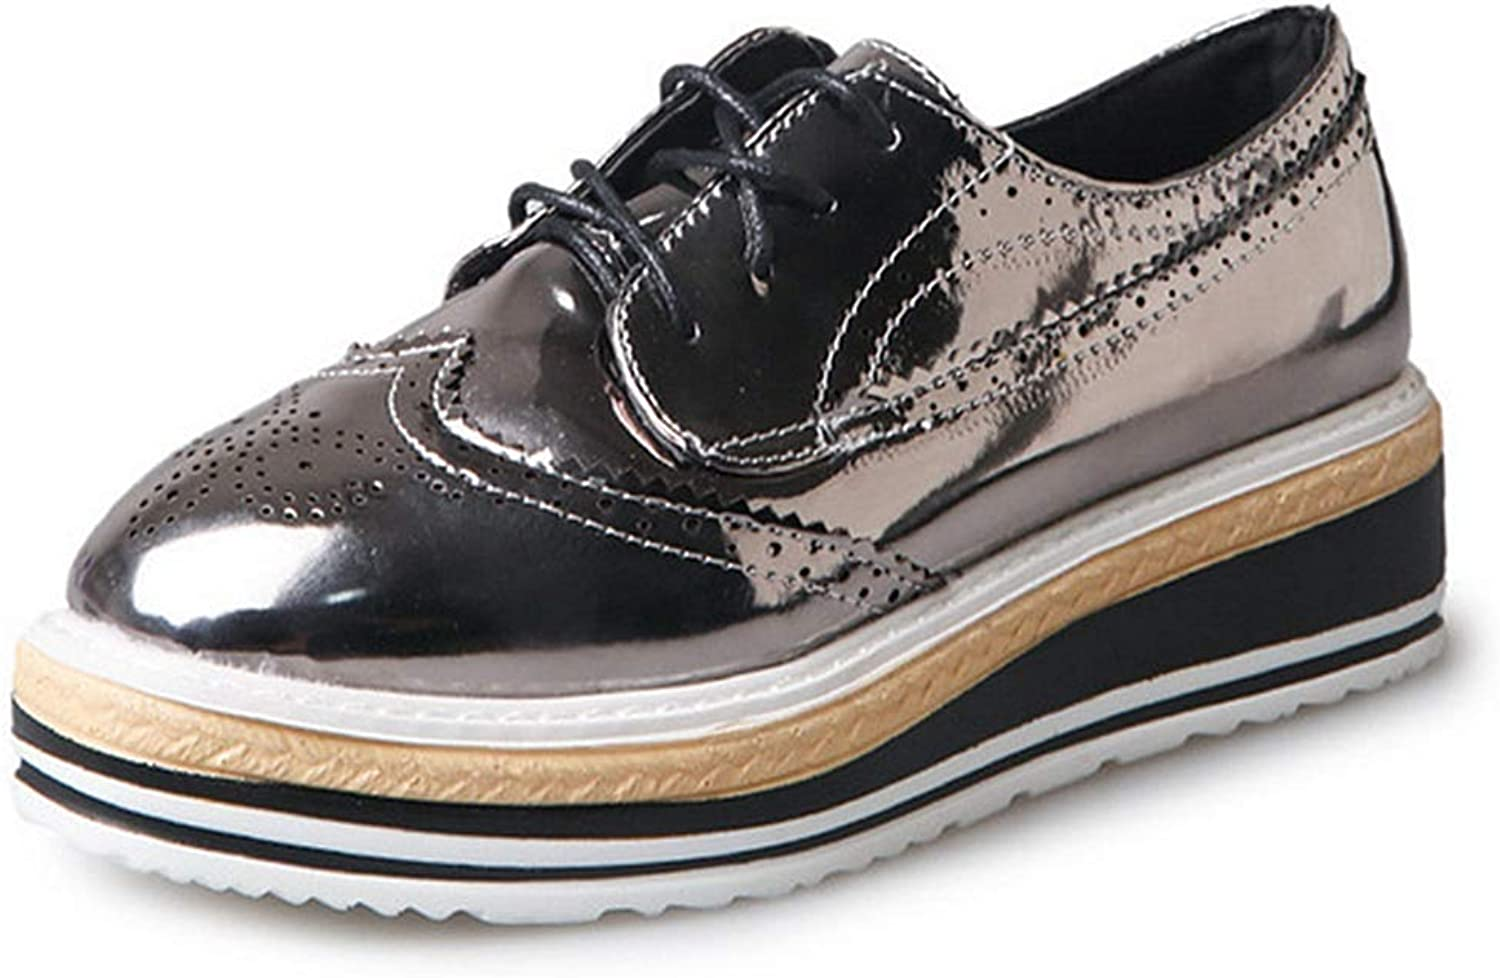 GIY Women's Oxfords shoes Round Toe Perforated Lace-up Flat Wegde Platform Brogues Wingtip Oxford shoes